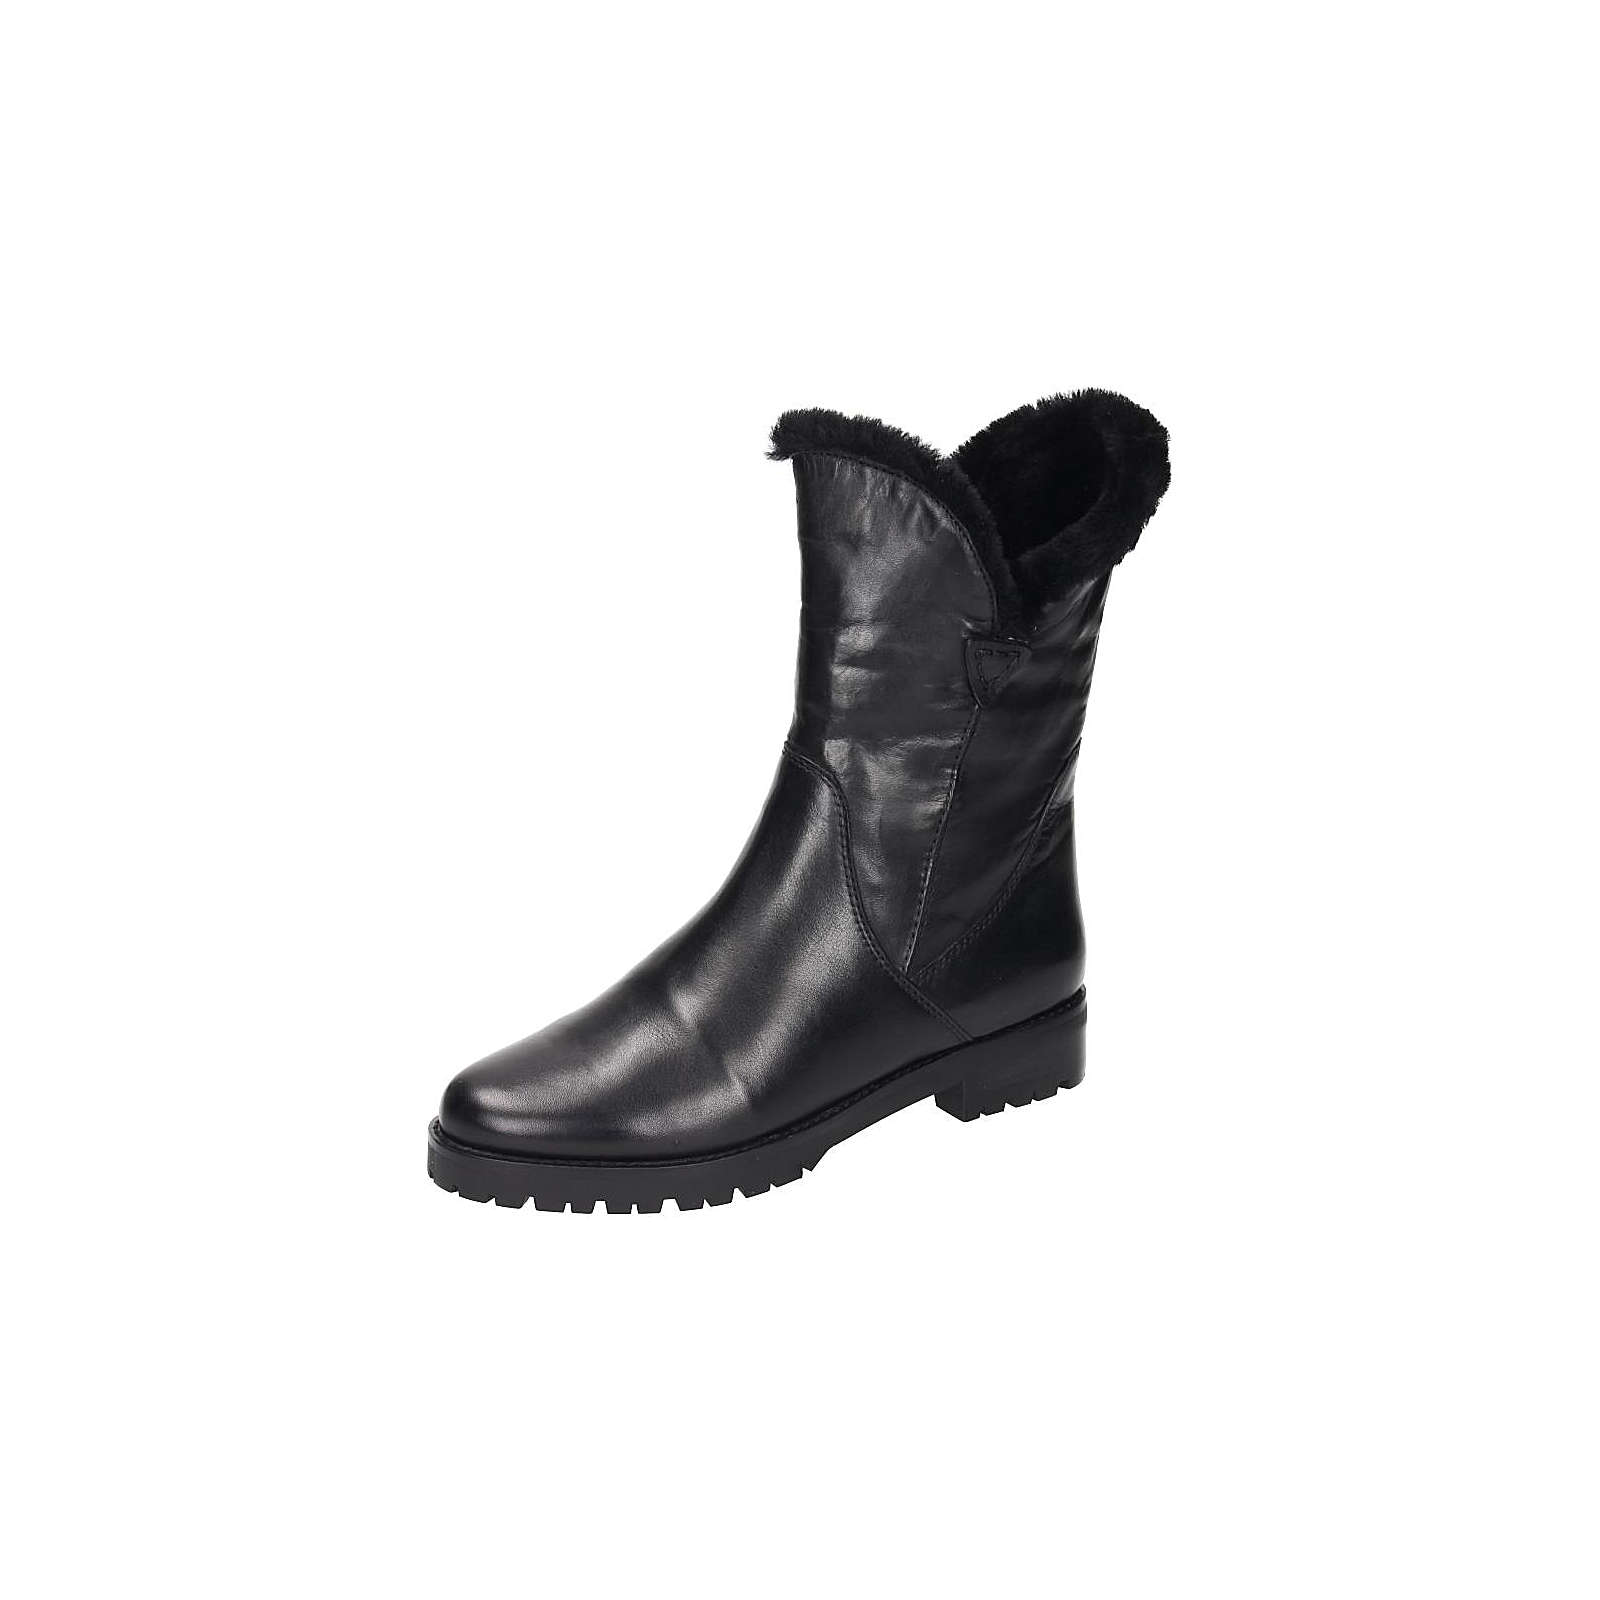 Everybody Damen Stiefel Winterstiefel schwarz Damen Gr. 39